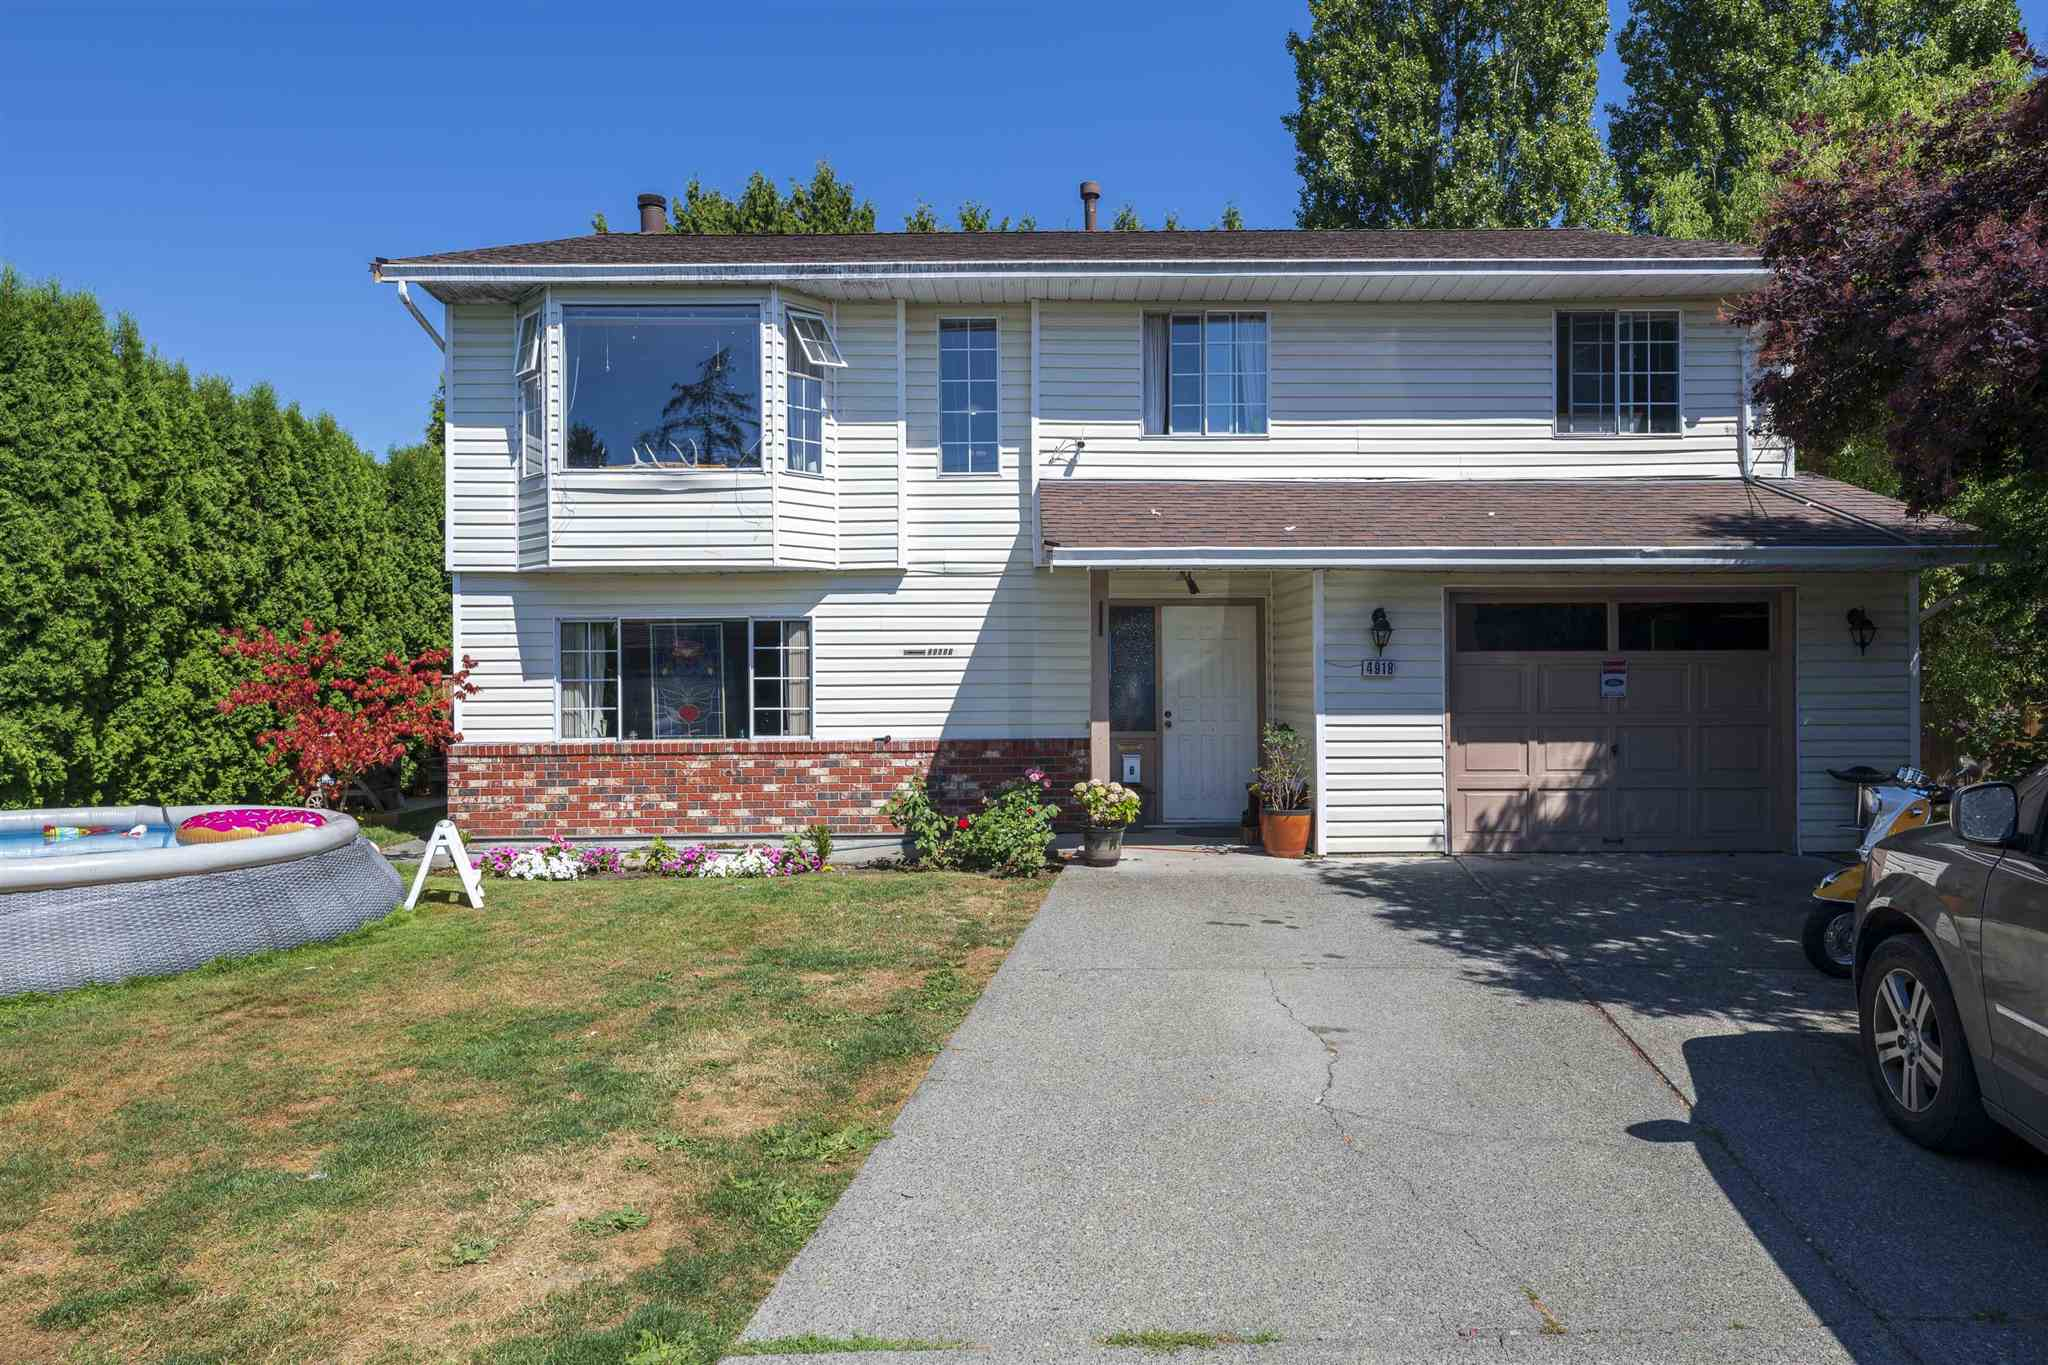 Fabulous 5 bedroom home with a legal suite in family friendly neighbourhood near Bell Park in Ladner. Basement entry with private, fully fenced backyard. 3 bedrooms upstairs including master bedroom with full ensuite. Downstair boasts a legal 2 bedroom suite with separate entry.